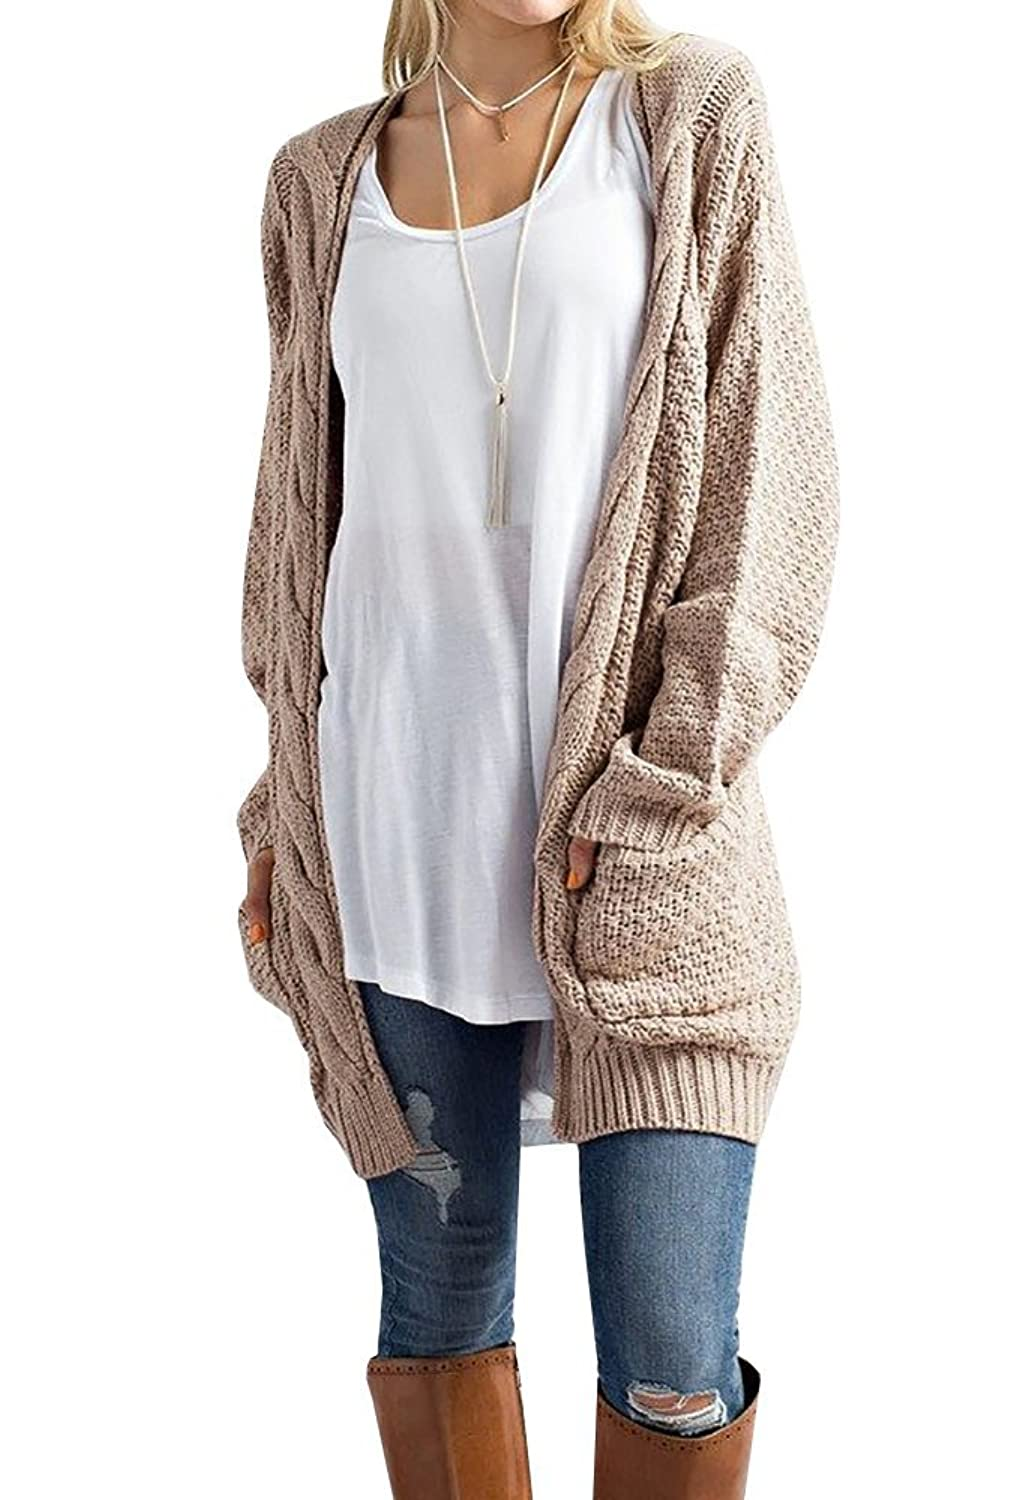 8ee4920a3035 Material This cardgian sweater is feeling soft and warm on the skin. with  high elasticity